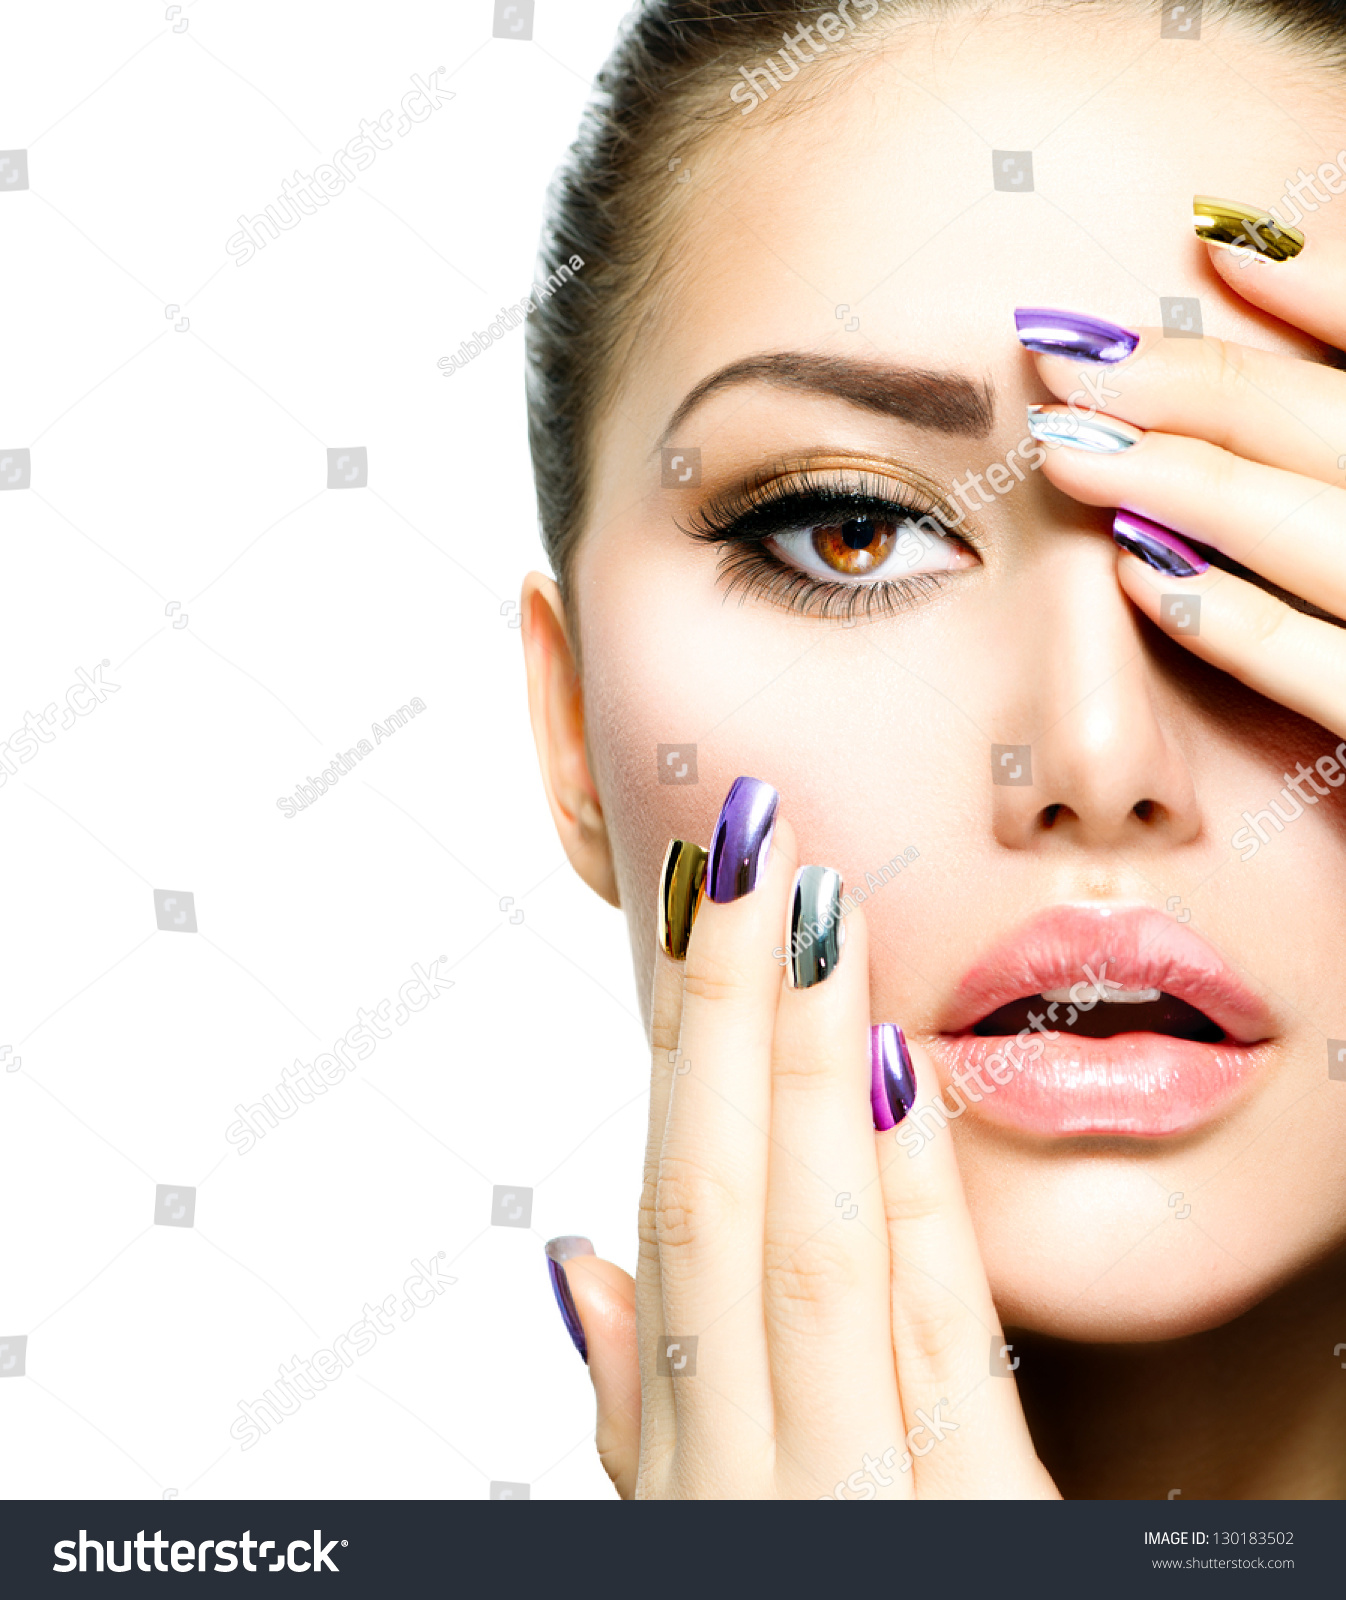 Fashion Nail Salon And Beauty Spa Games For Girls: Royalty-free Beautiful Fashion Girl's Face. Makeup